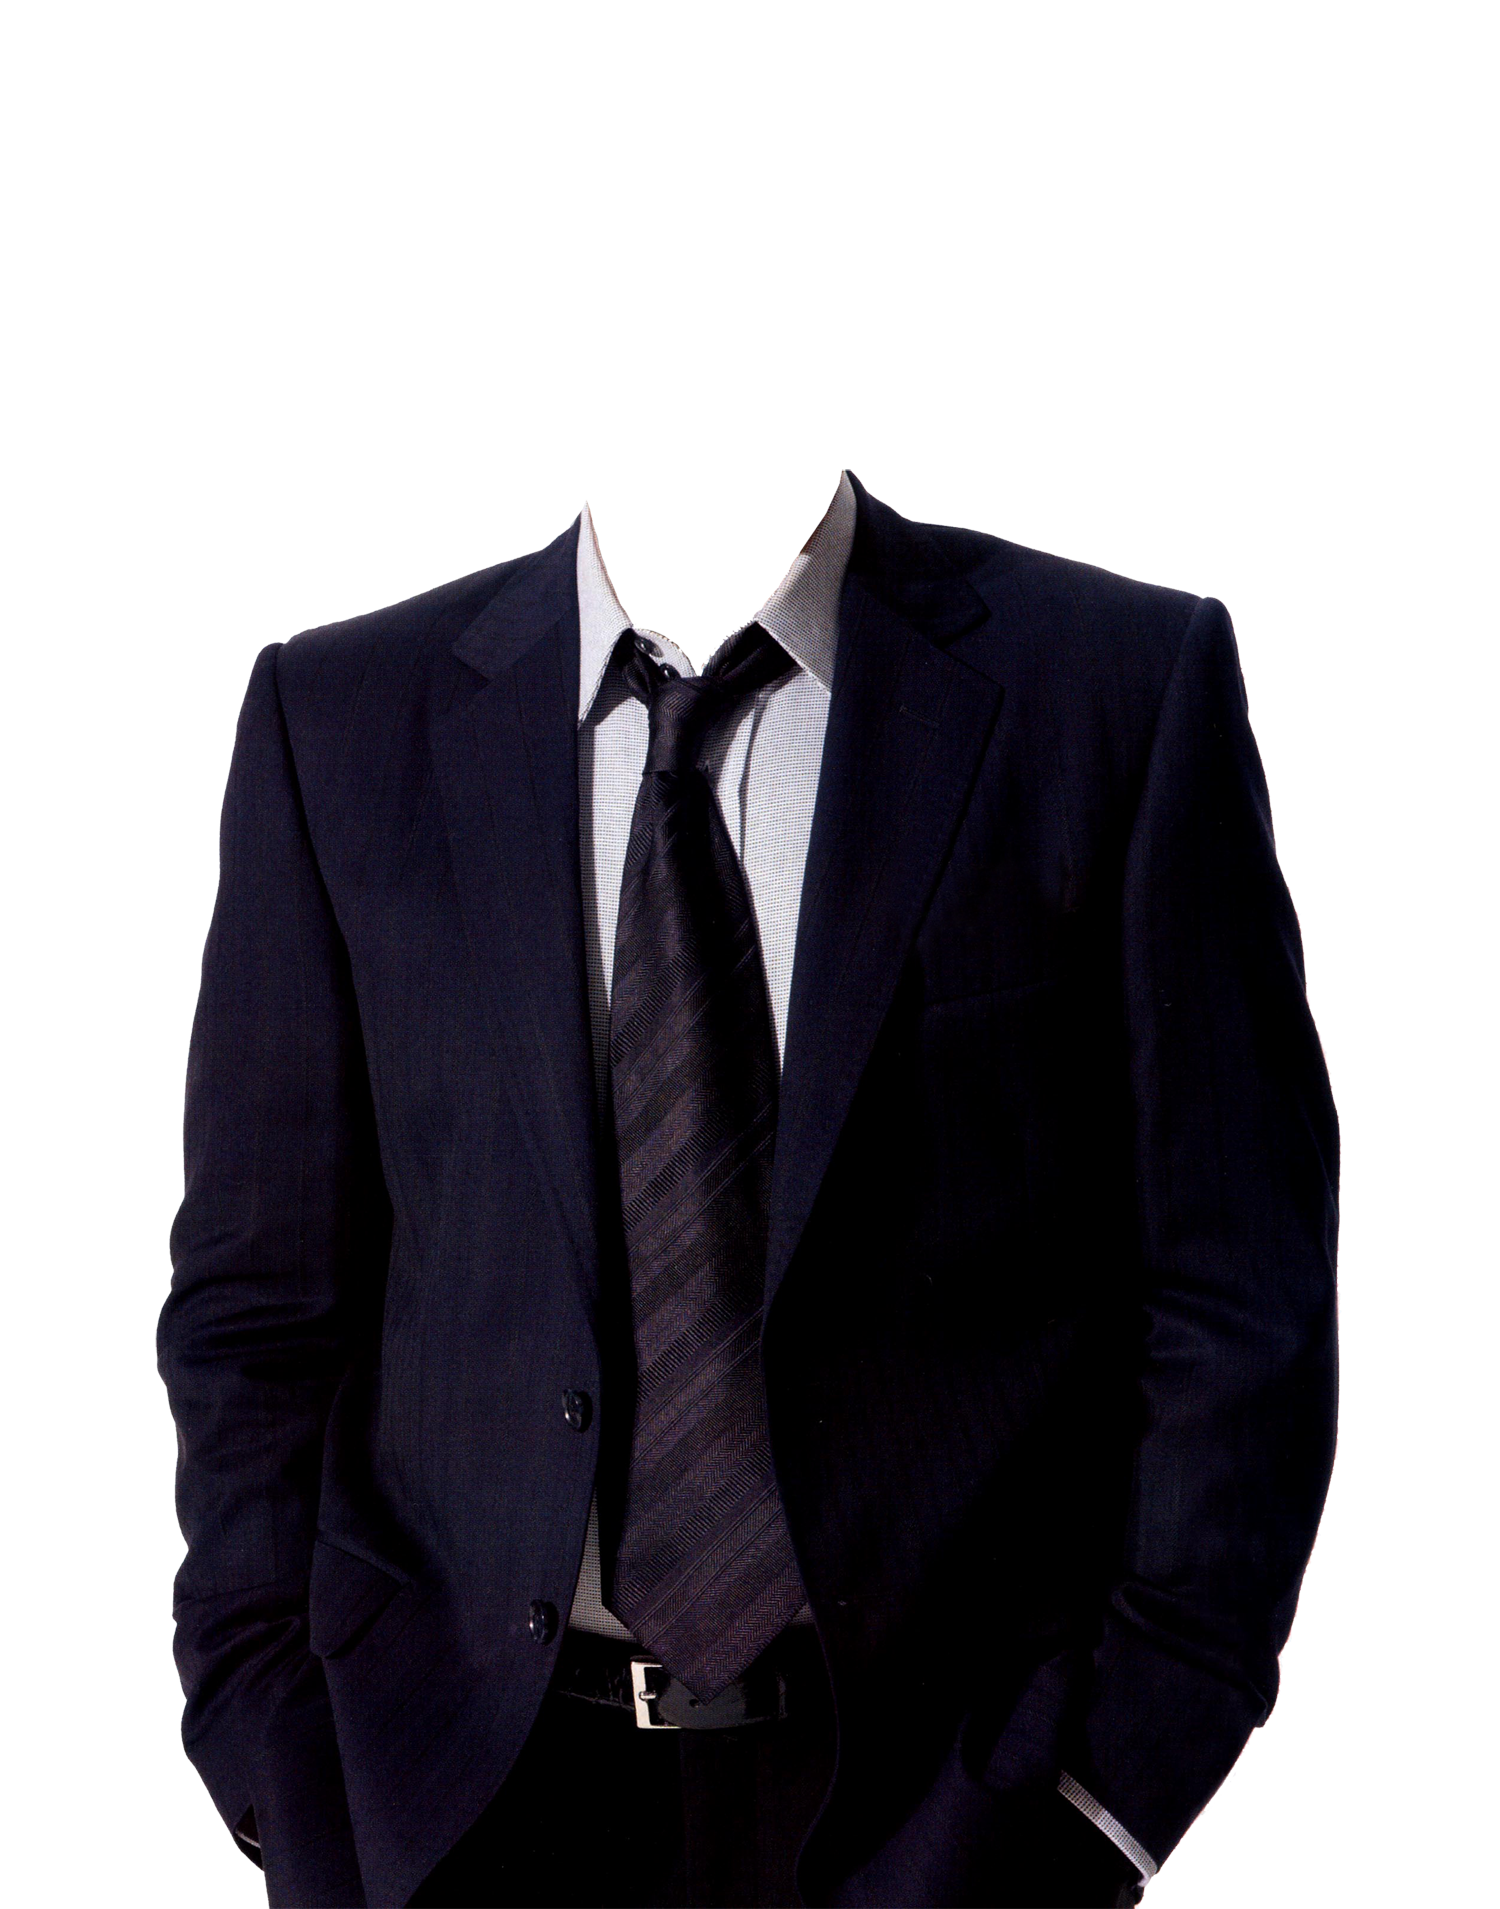 Clothes png photoshop. Suit image transparent images